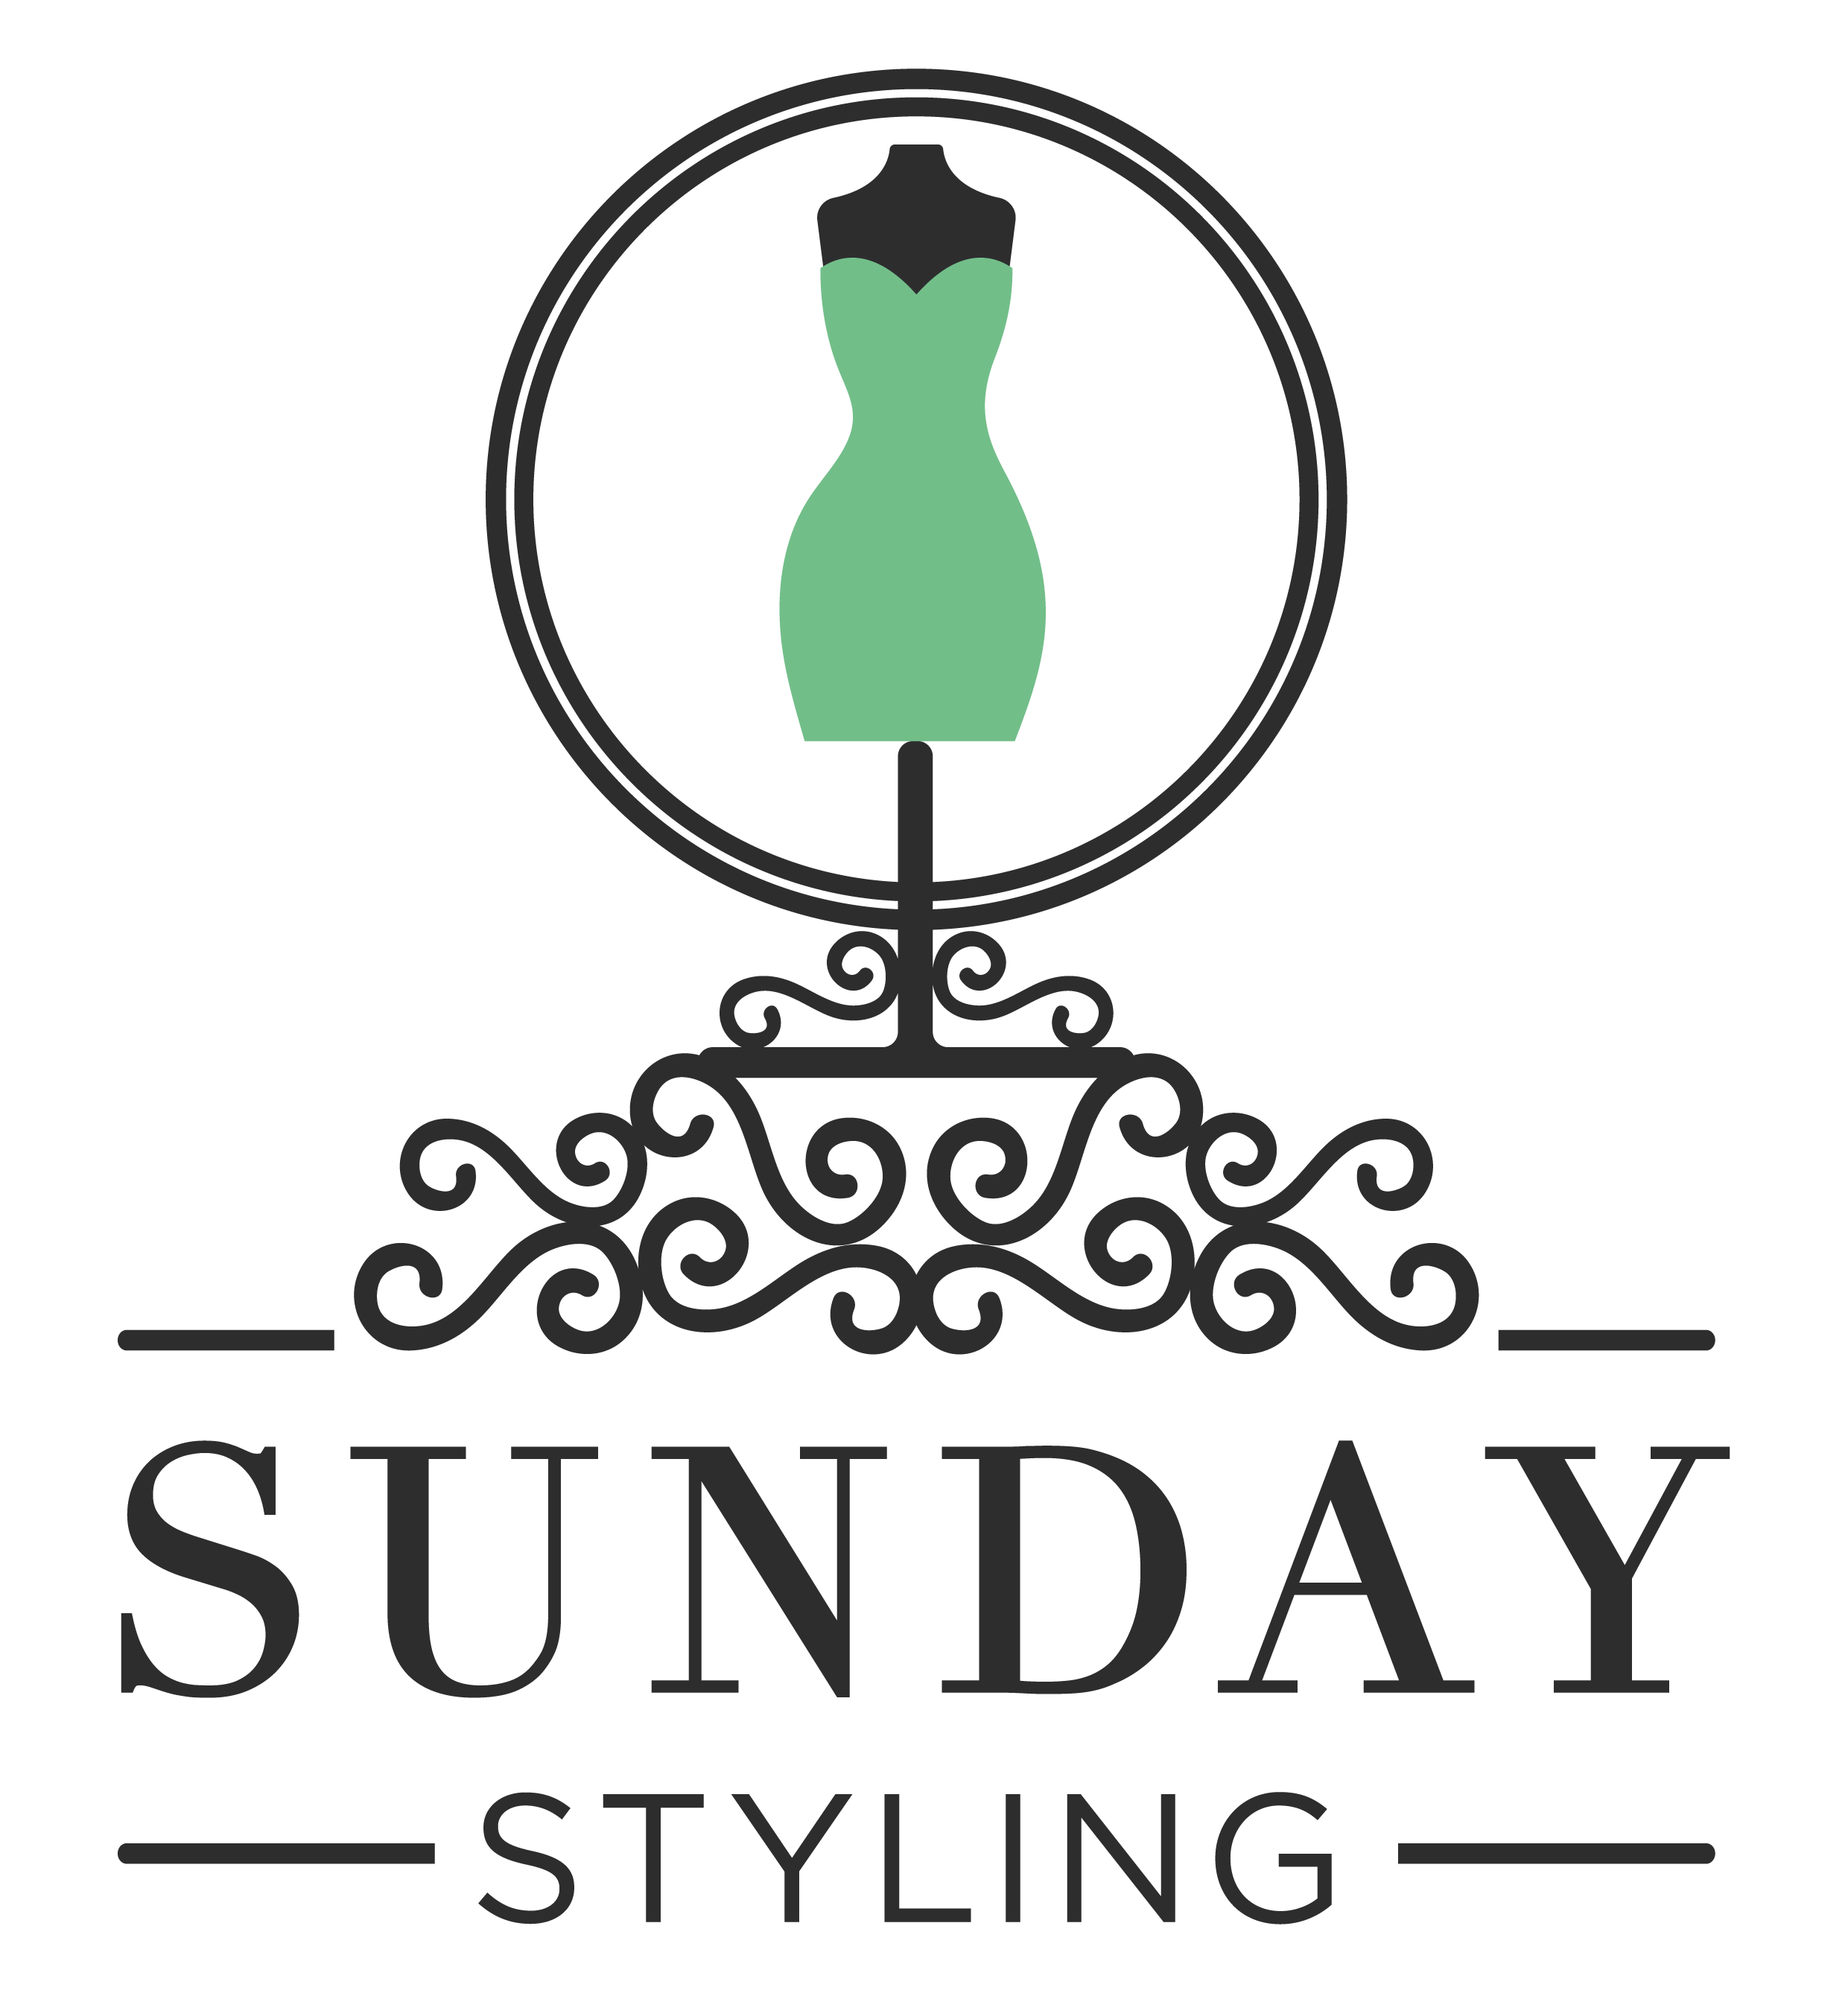 Fashion clipart personal stylist. Sunday styling independent based